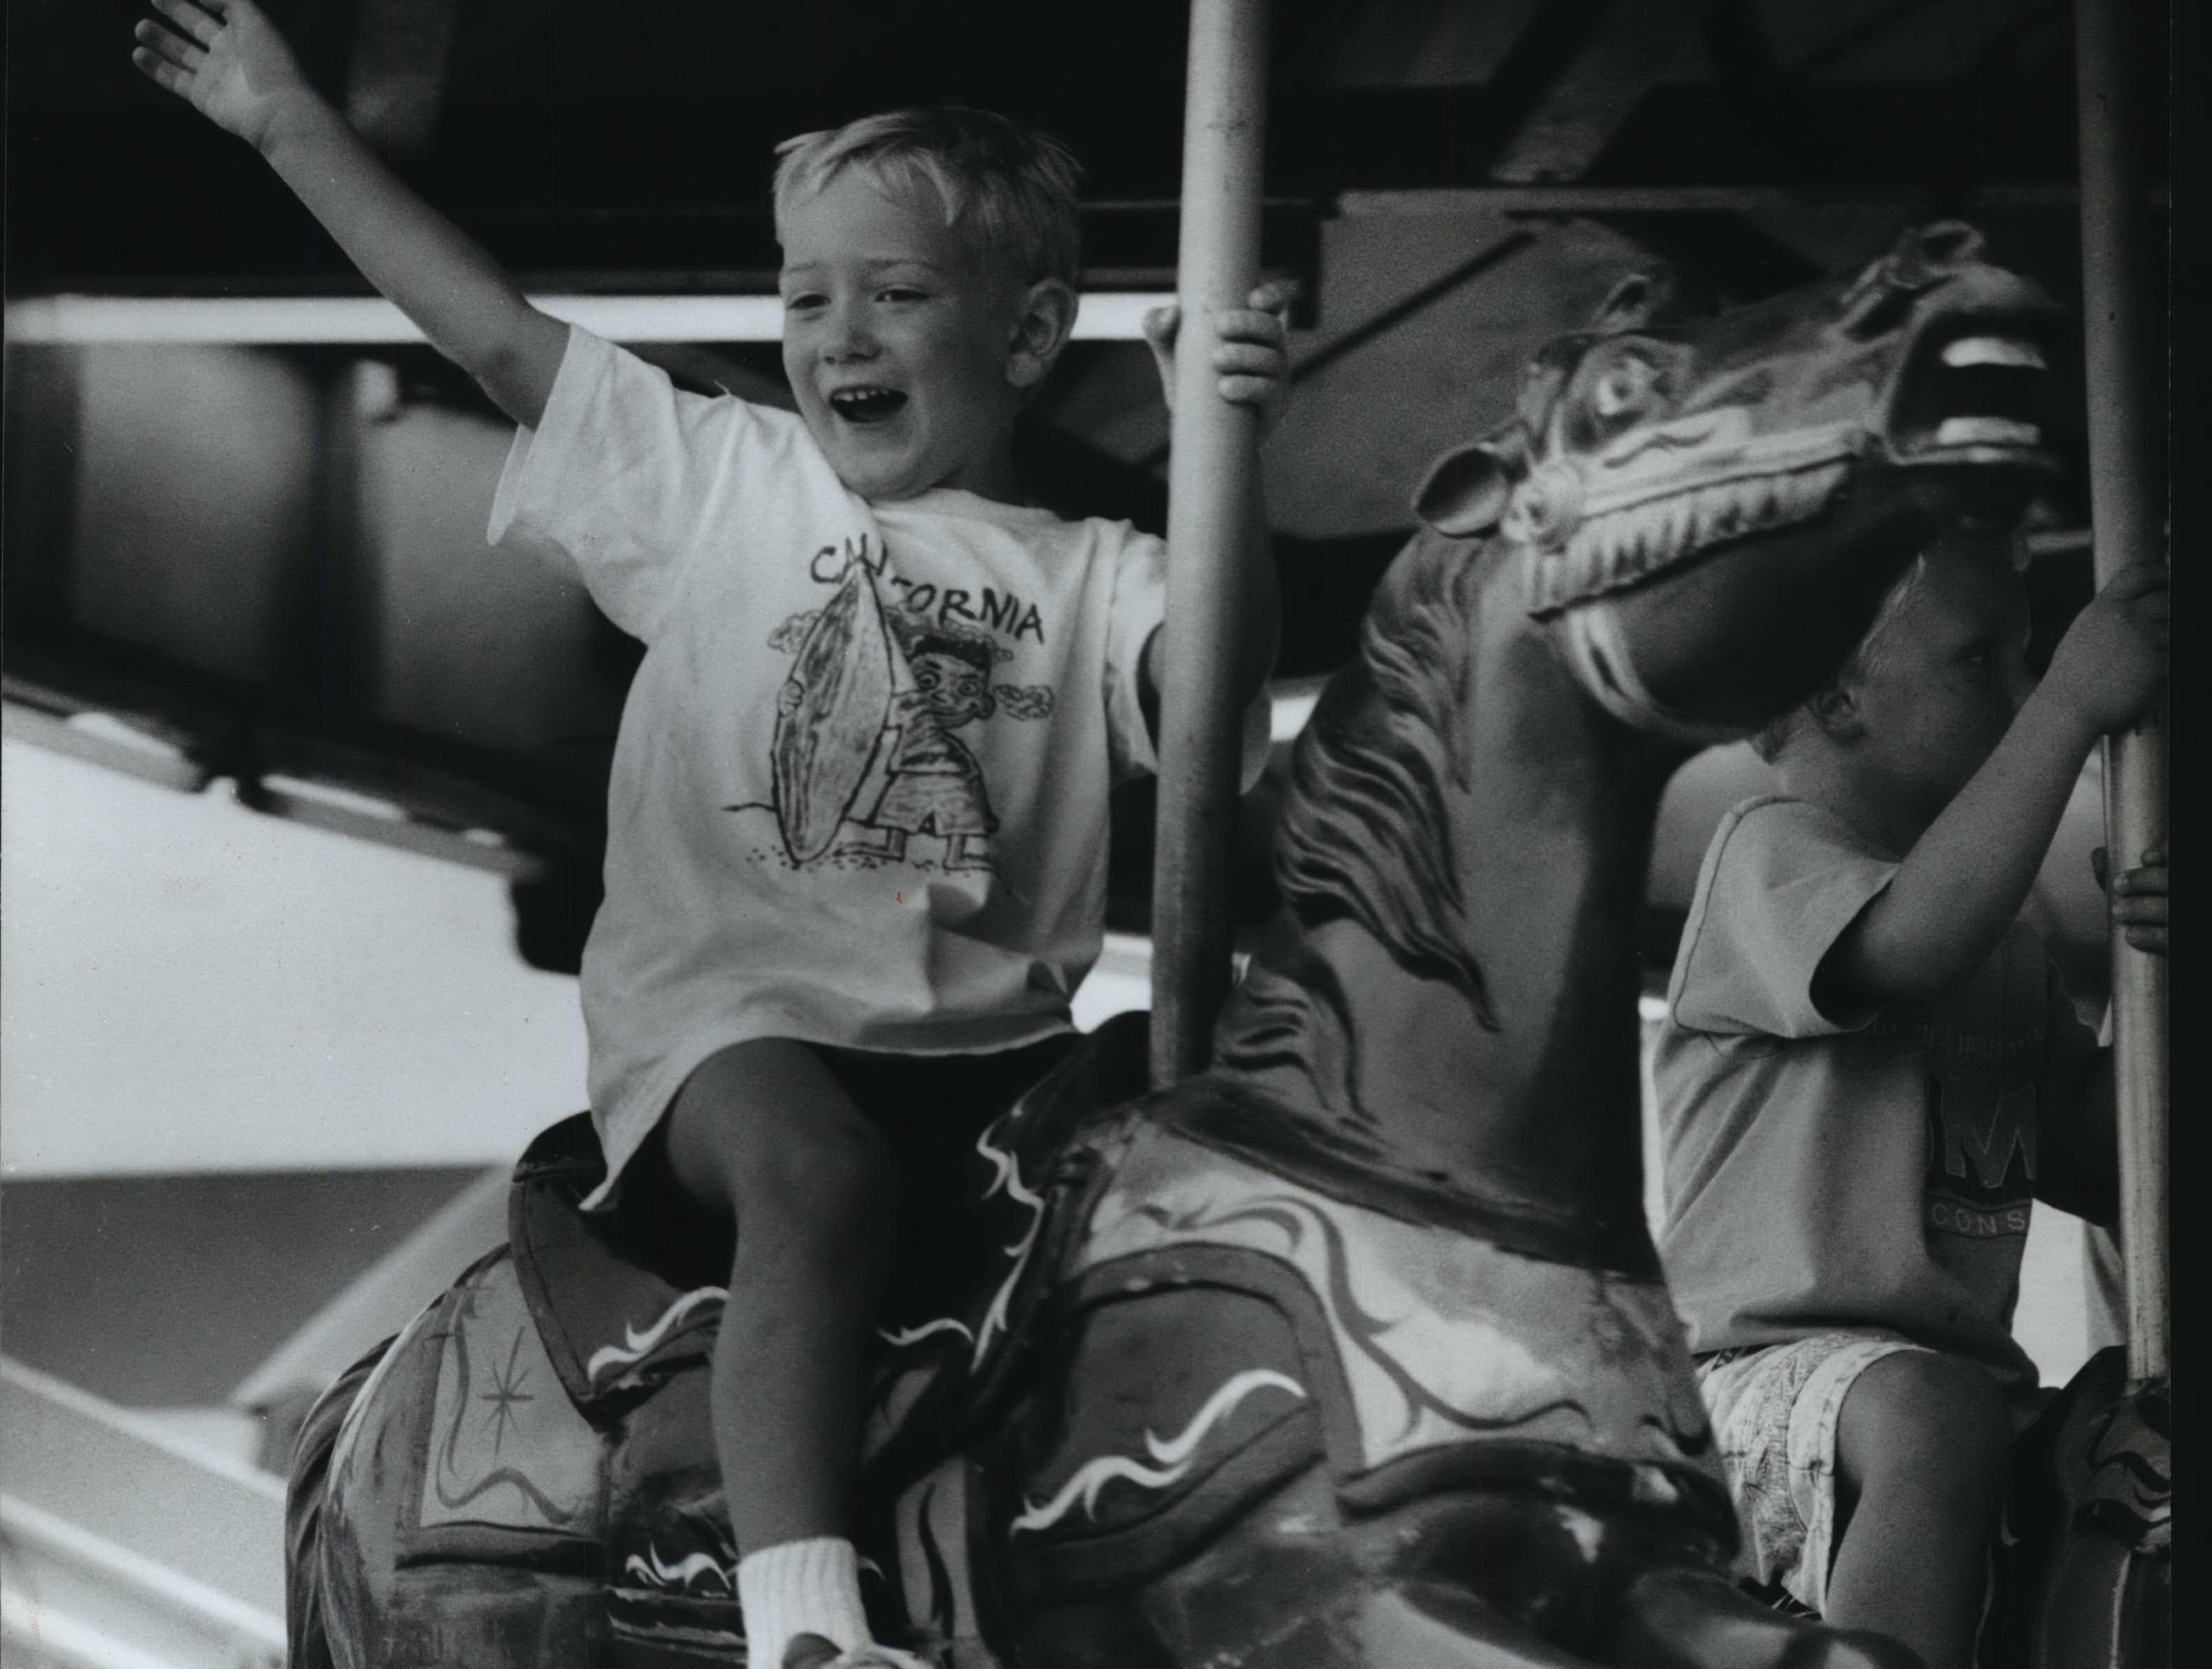 The Washington County Junior Fair offered plenty of entertainment for those who stopped by during the fair's four-day run in Slinger. Justin Loduha, 4, of West Bend, waves to his parents from the carousel.